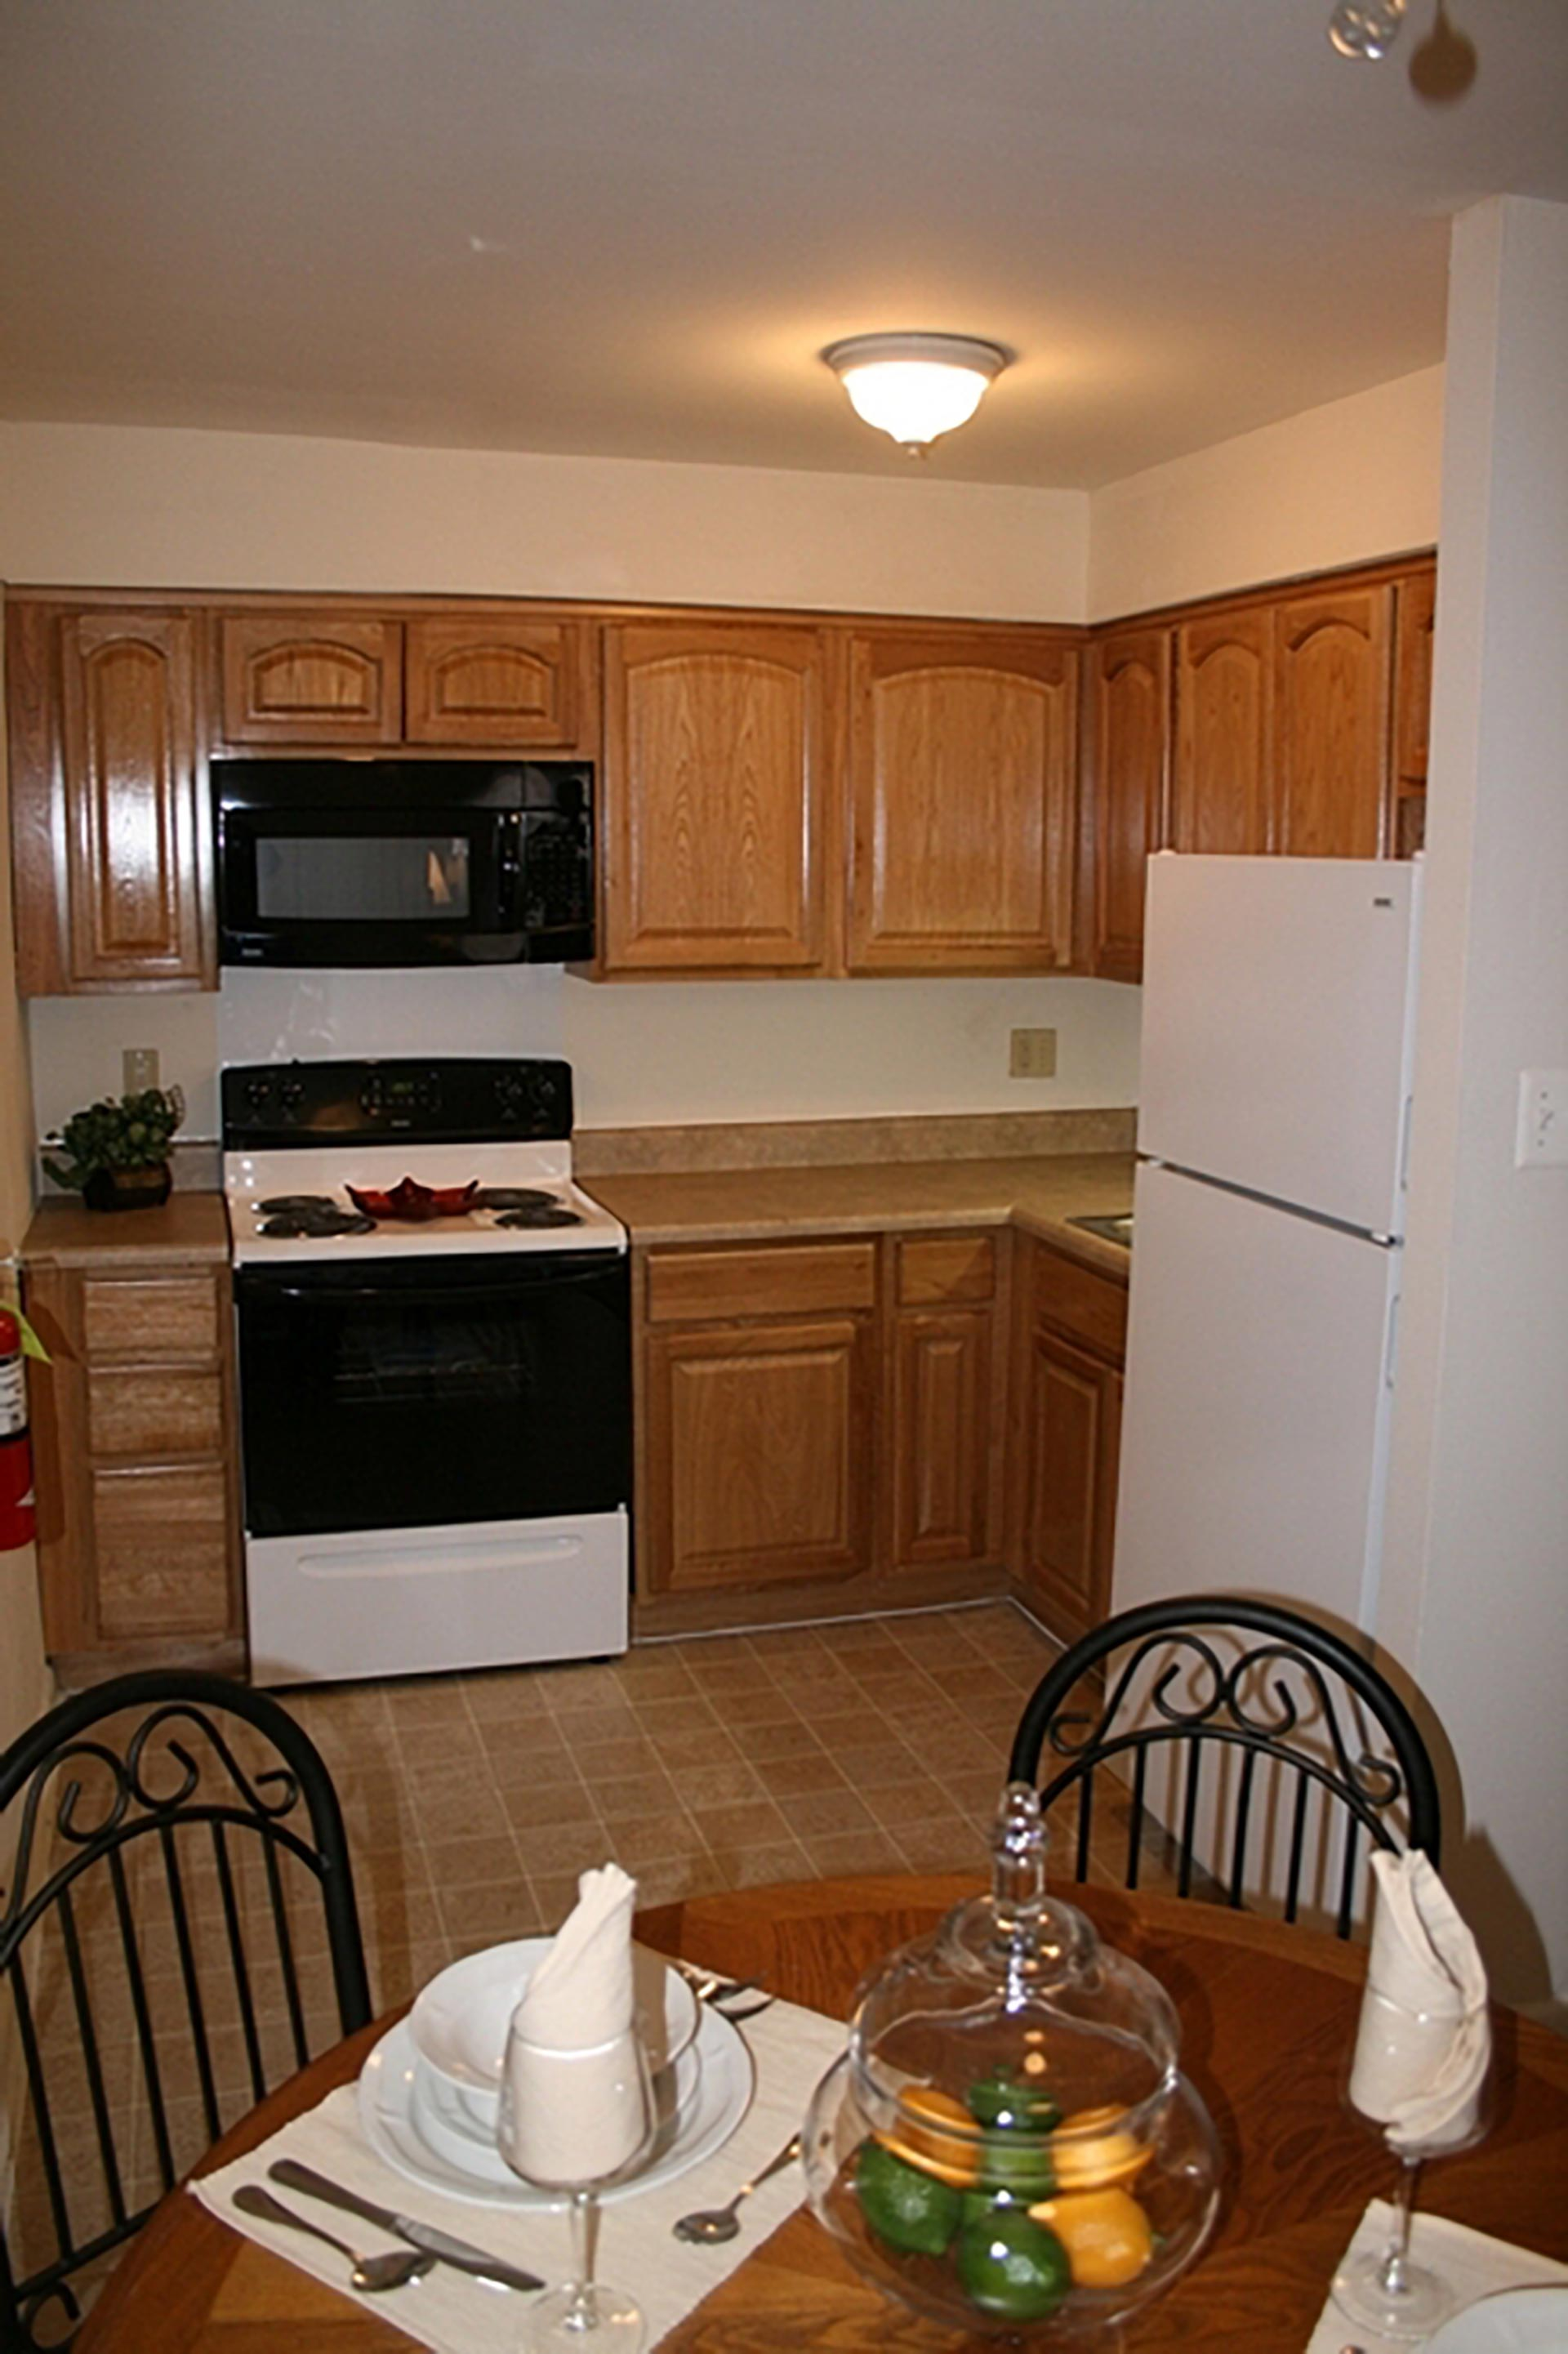 Ardmore Court kitchen with small dining table